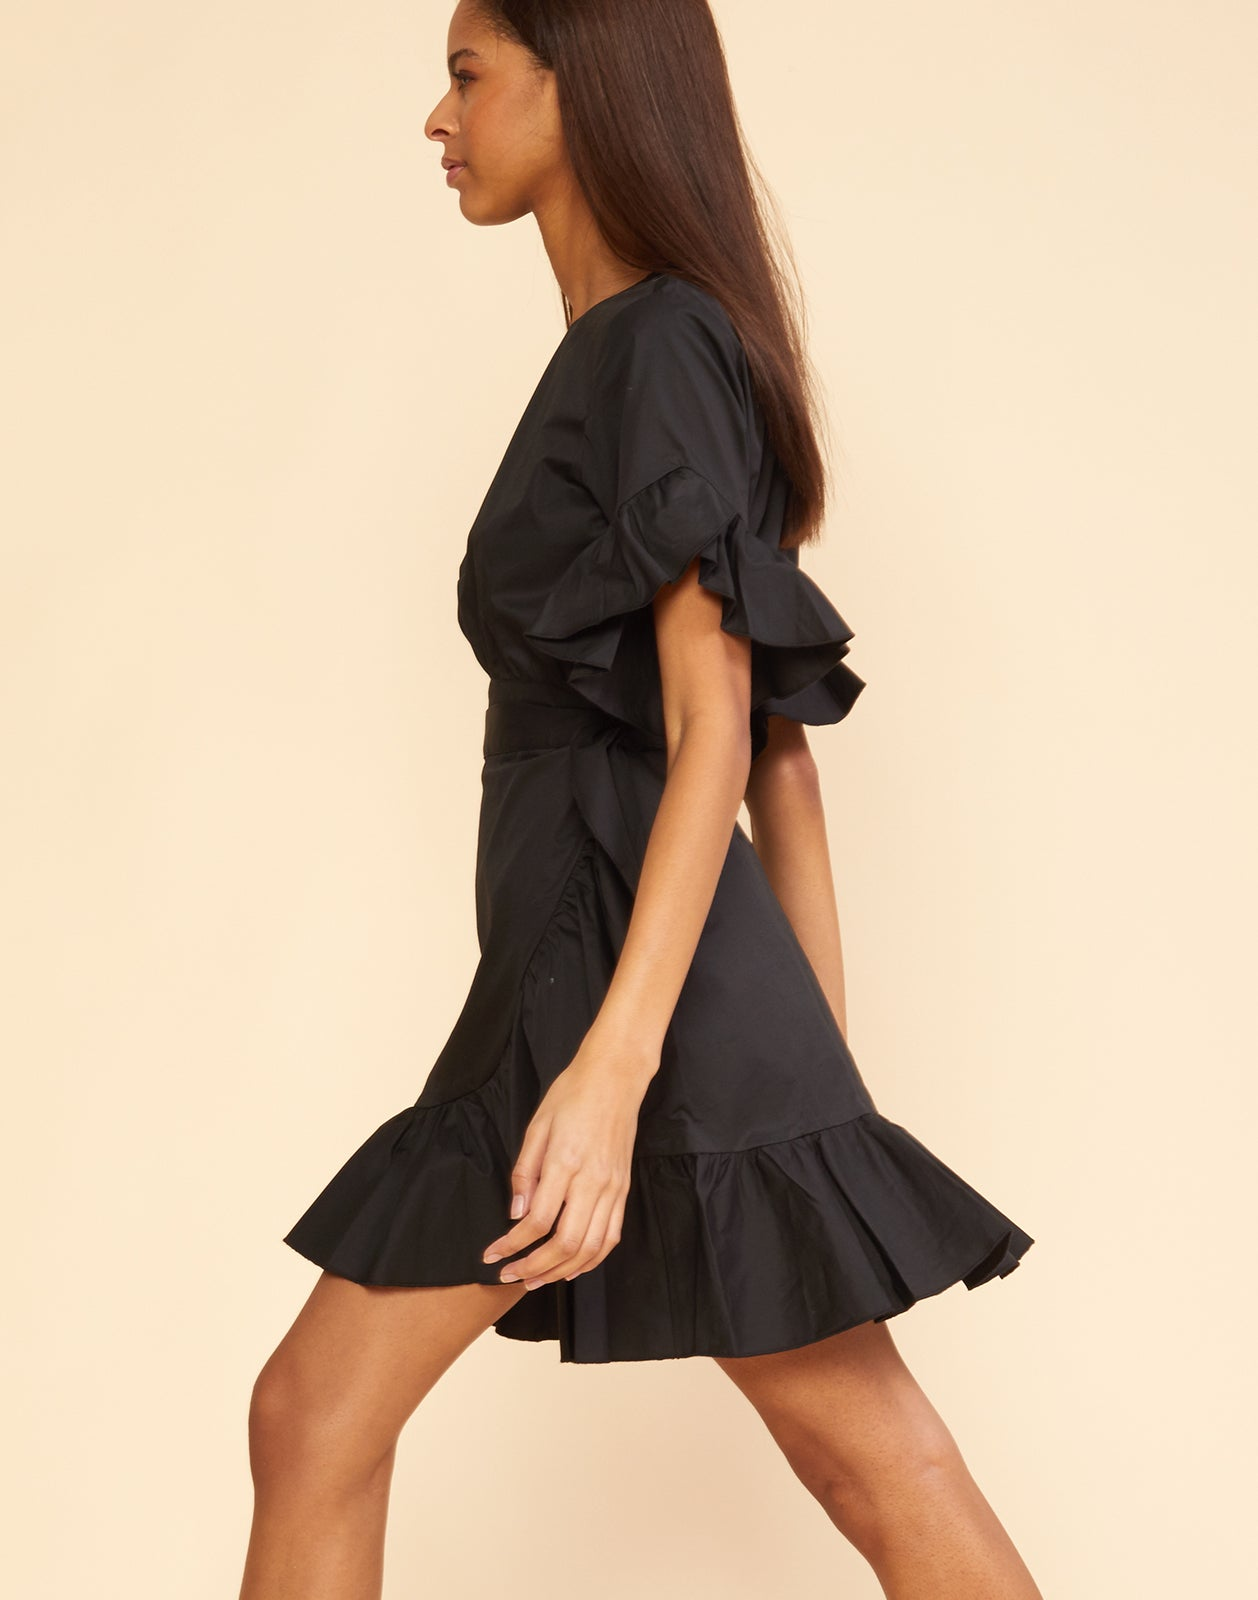 Left view of the polished cotton ruffle wrap dress